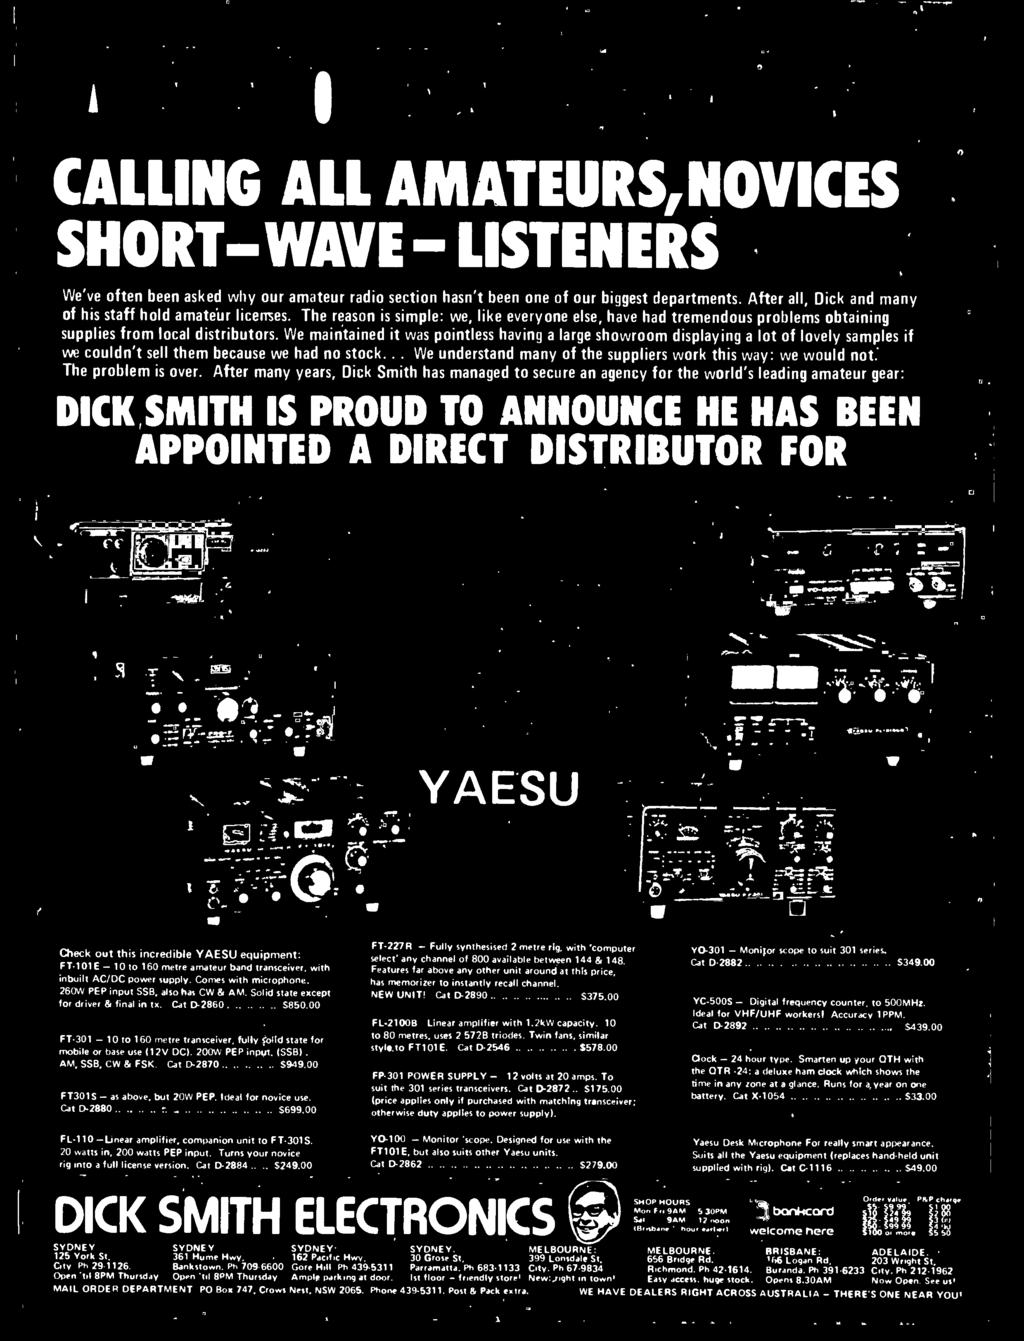 DICK SMITH IS PROUD TO ANNOUNCE HE HAS BEEN APPOINTED A DIRECT DISTRIBUTOR FOR. _ :=-p-: o...- _- YAESU =-.-- 717.'.